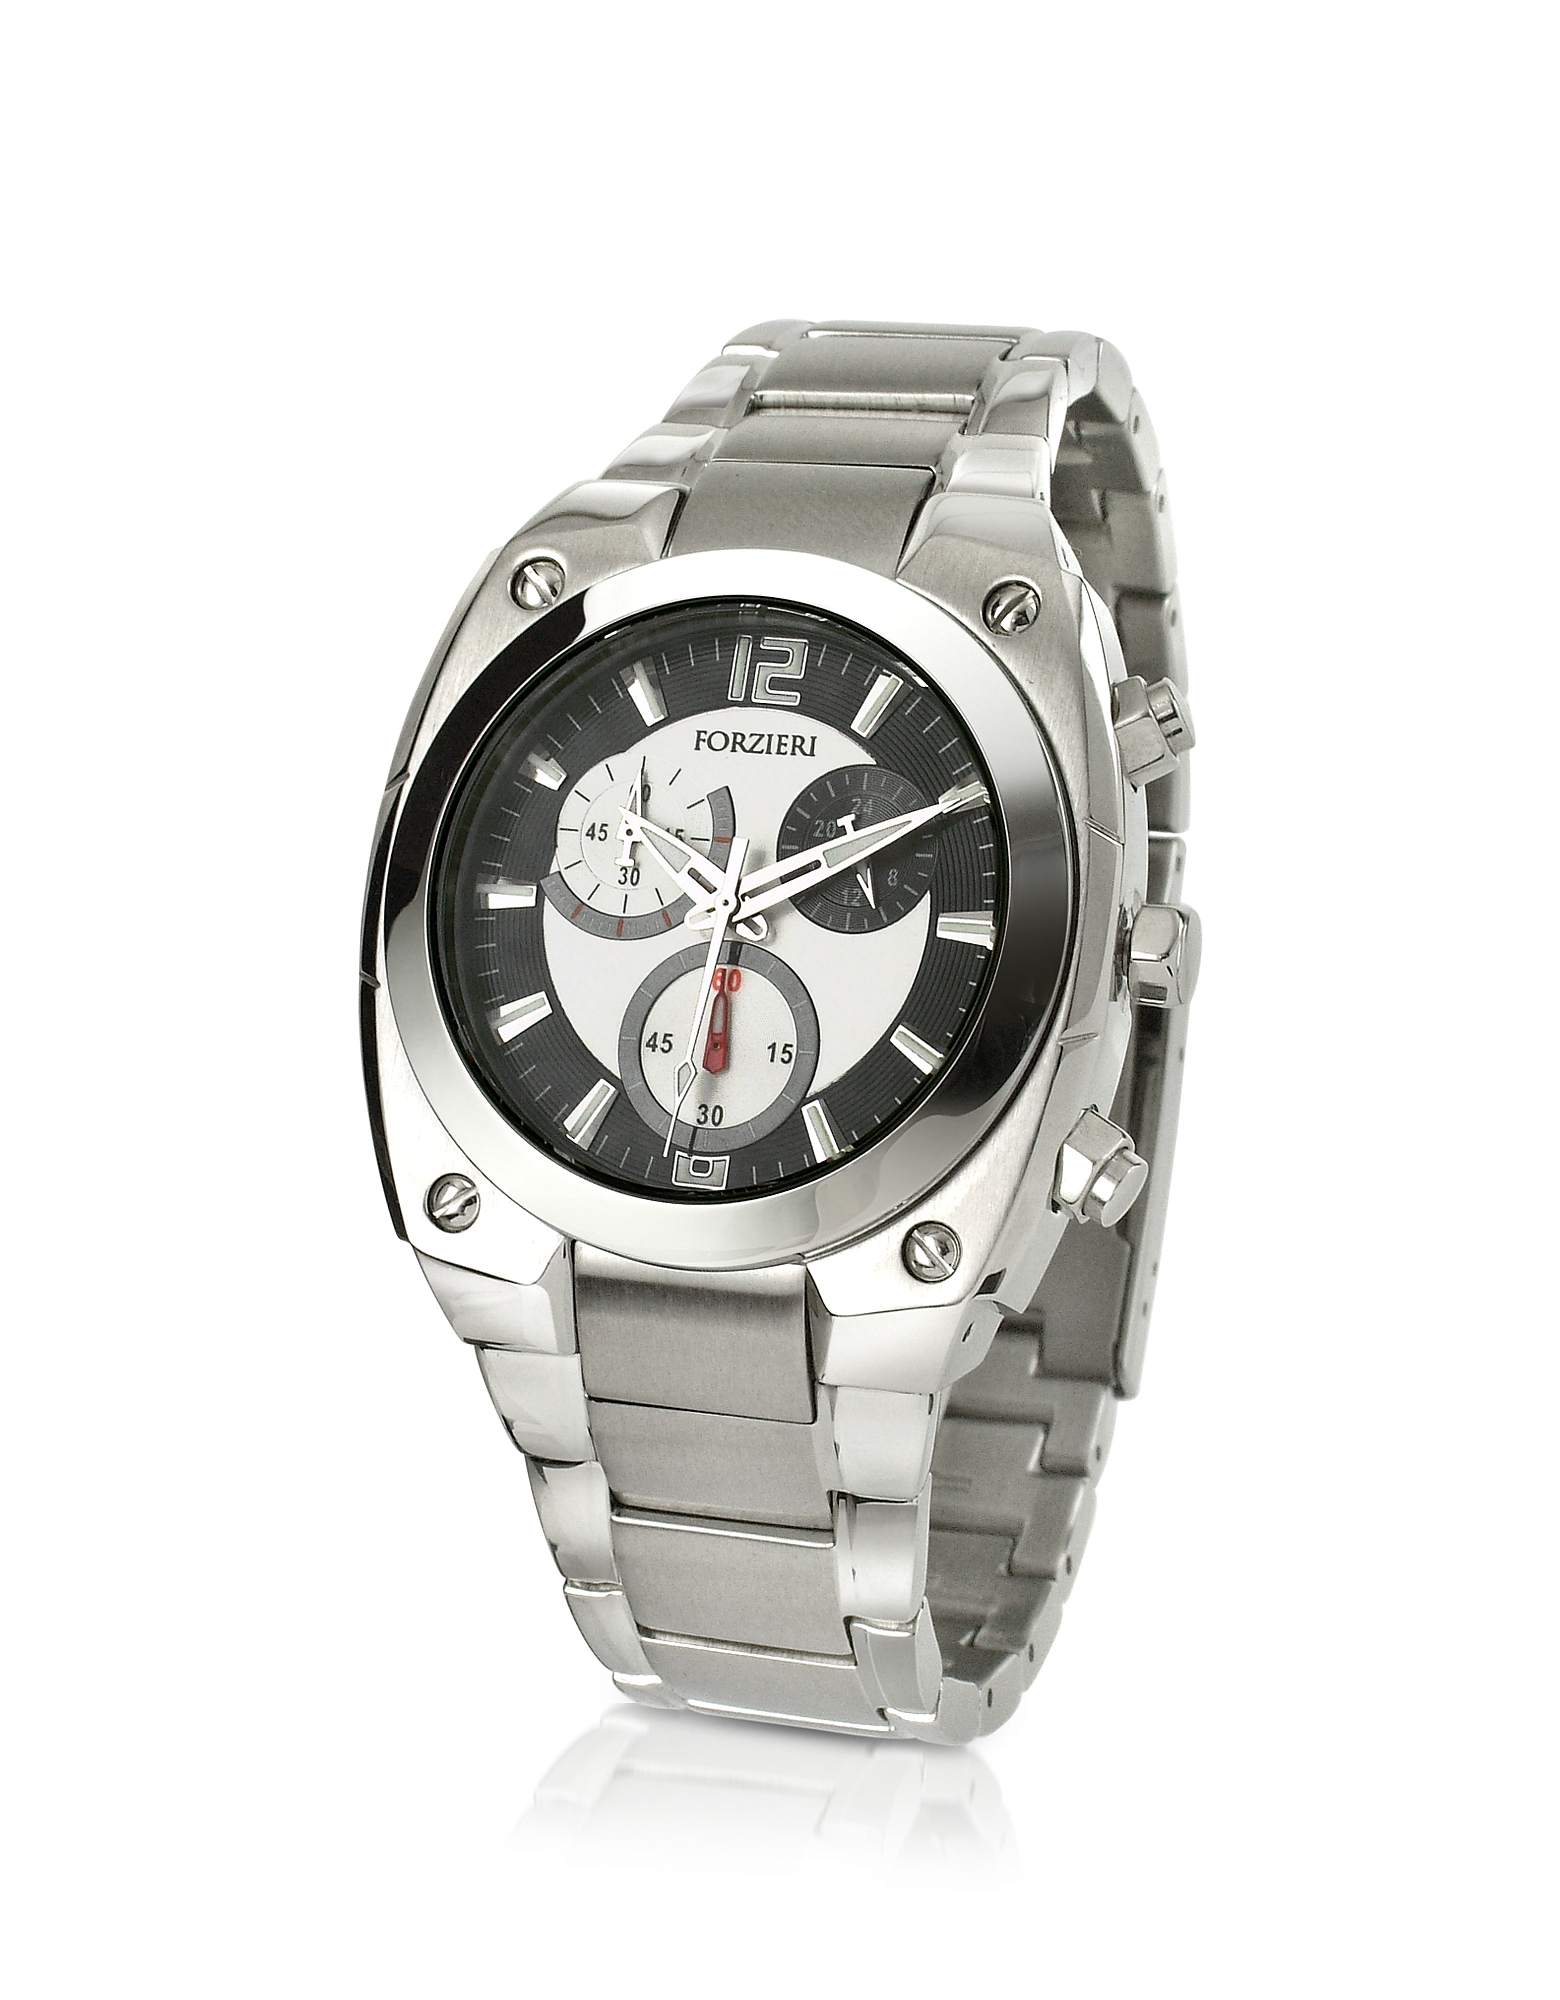 Forzieri Men's Watches, Men's Stainless Steel Bracelet Chronograph Watch